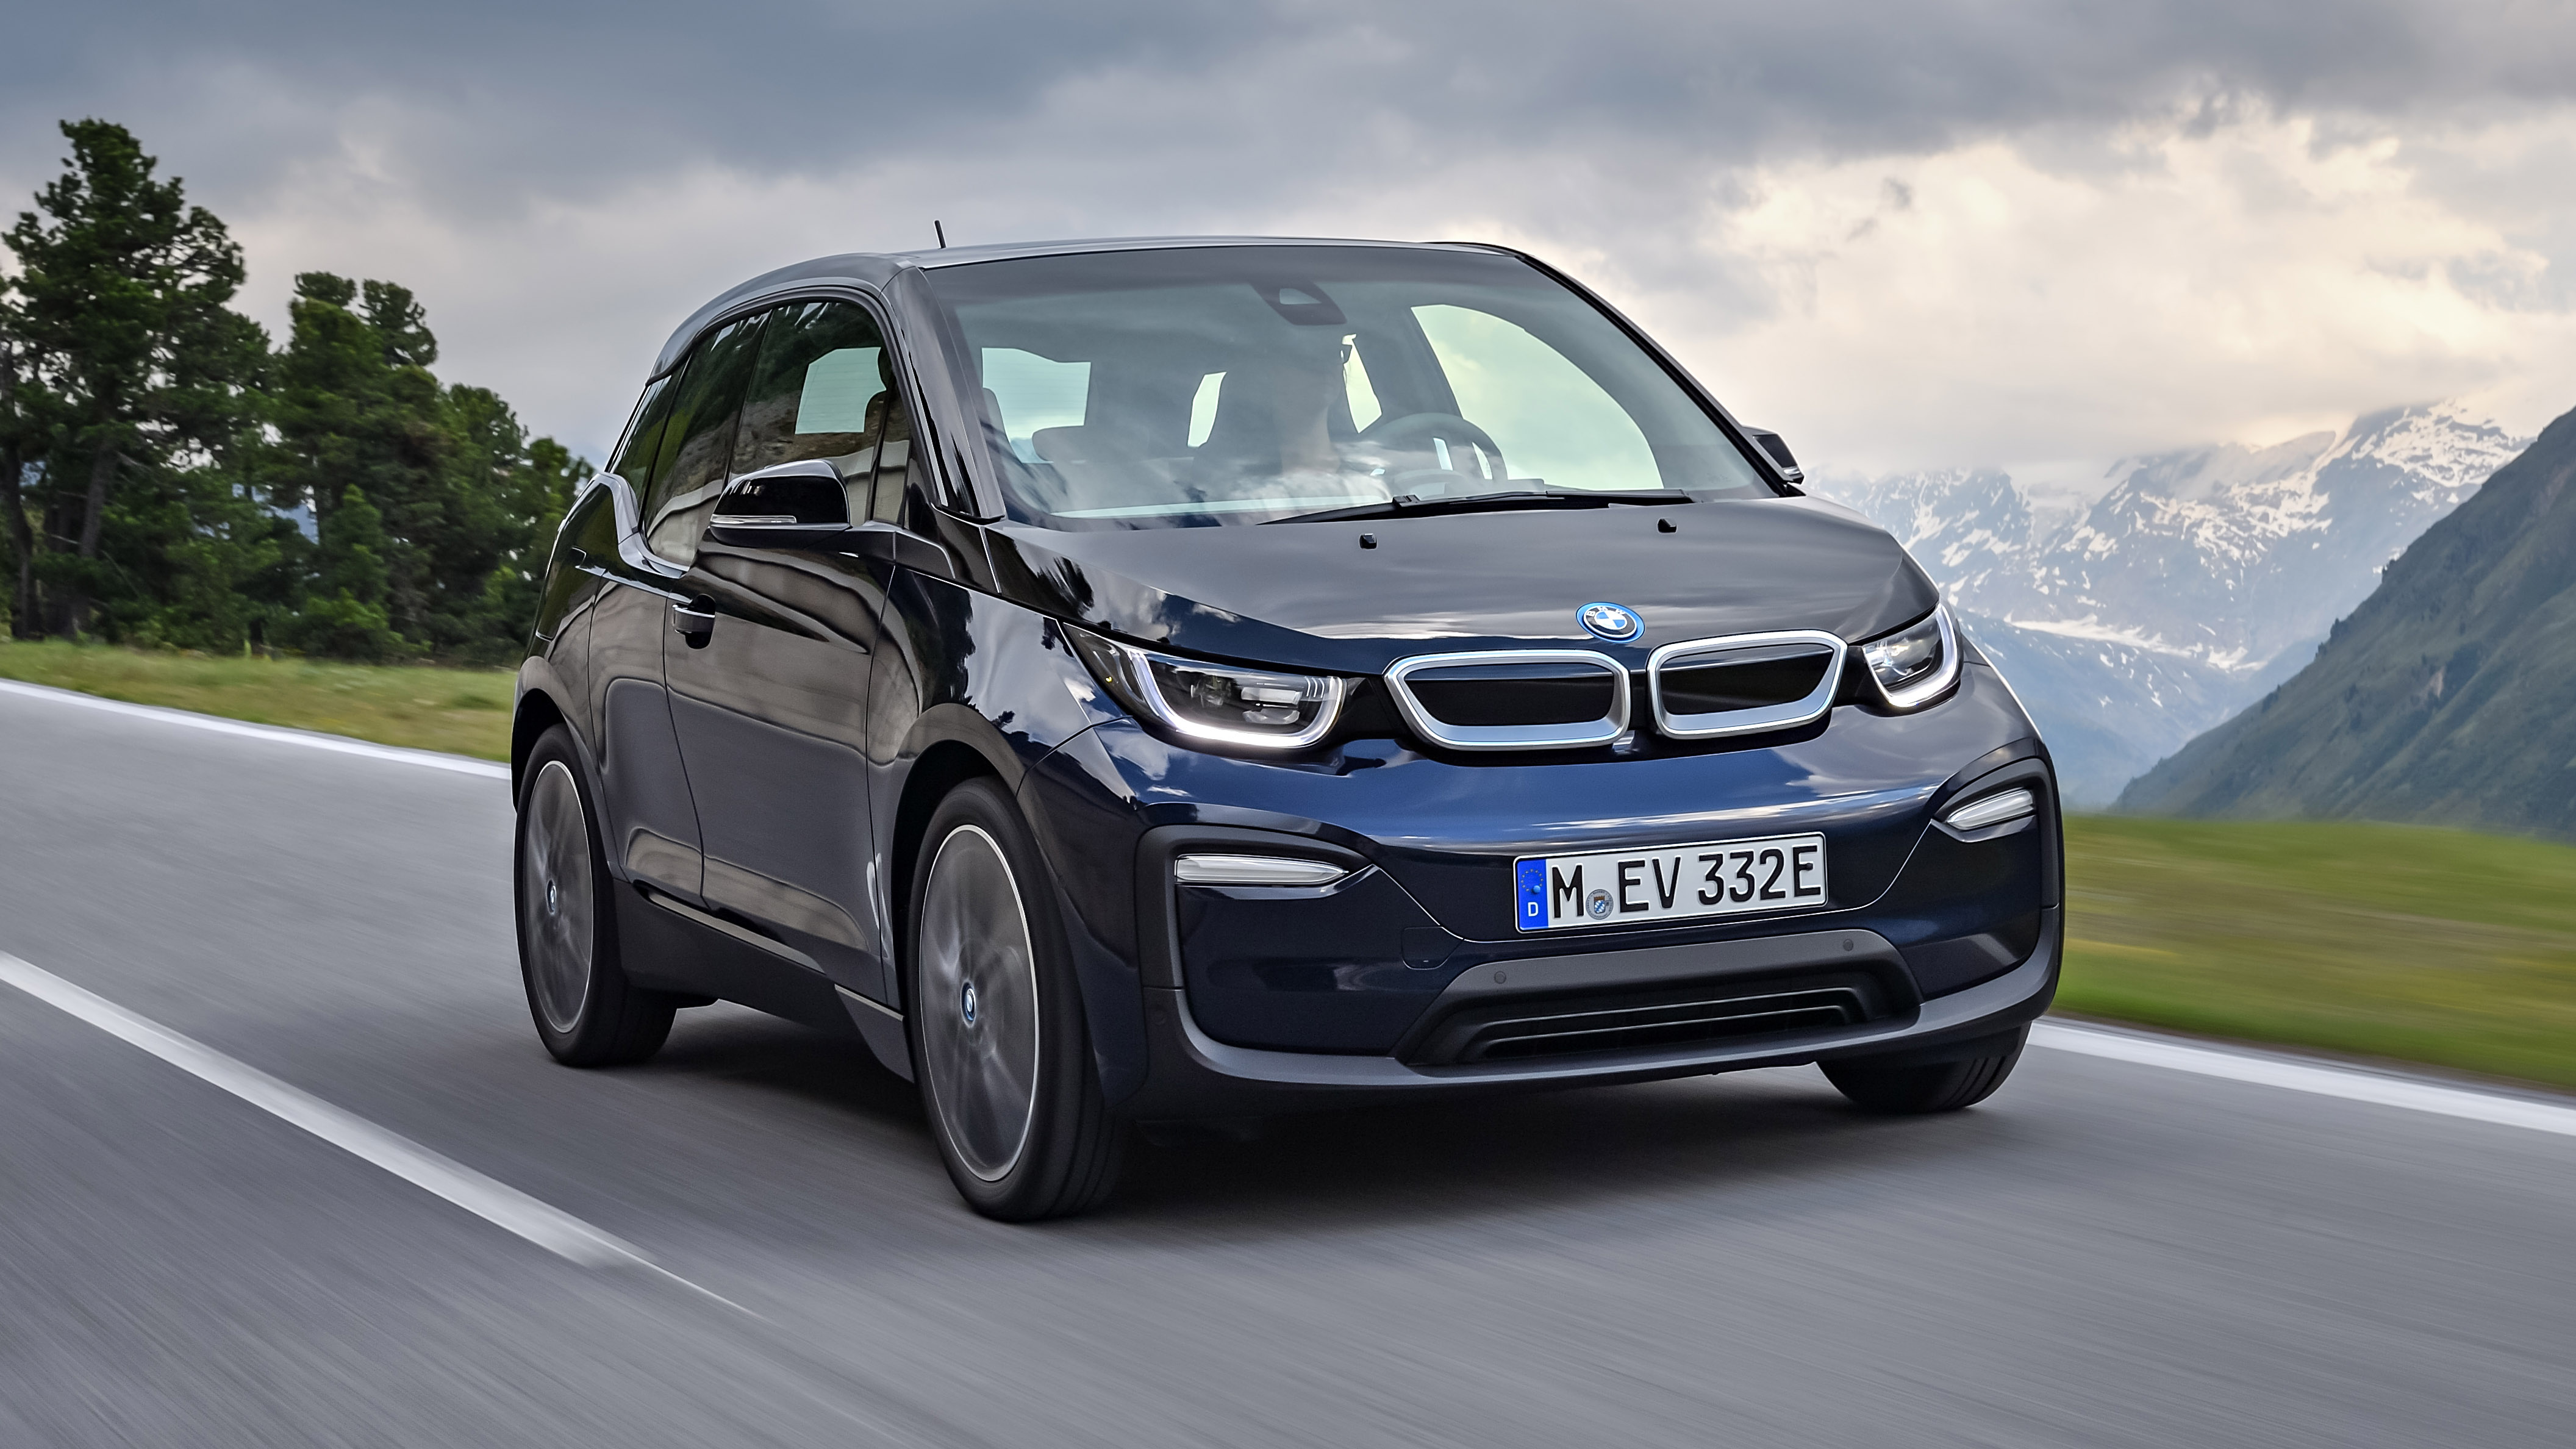 Rims For Cheap >> 2018 BMW i3 Review | Top Gear